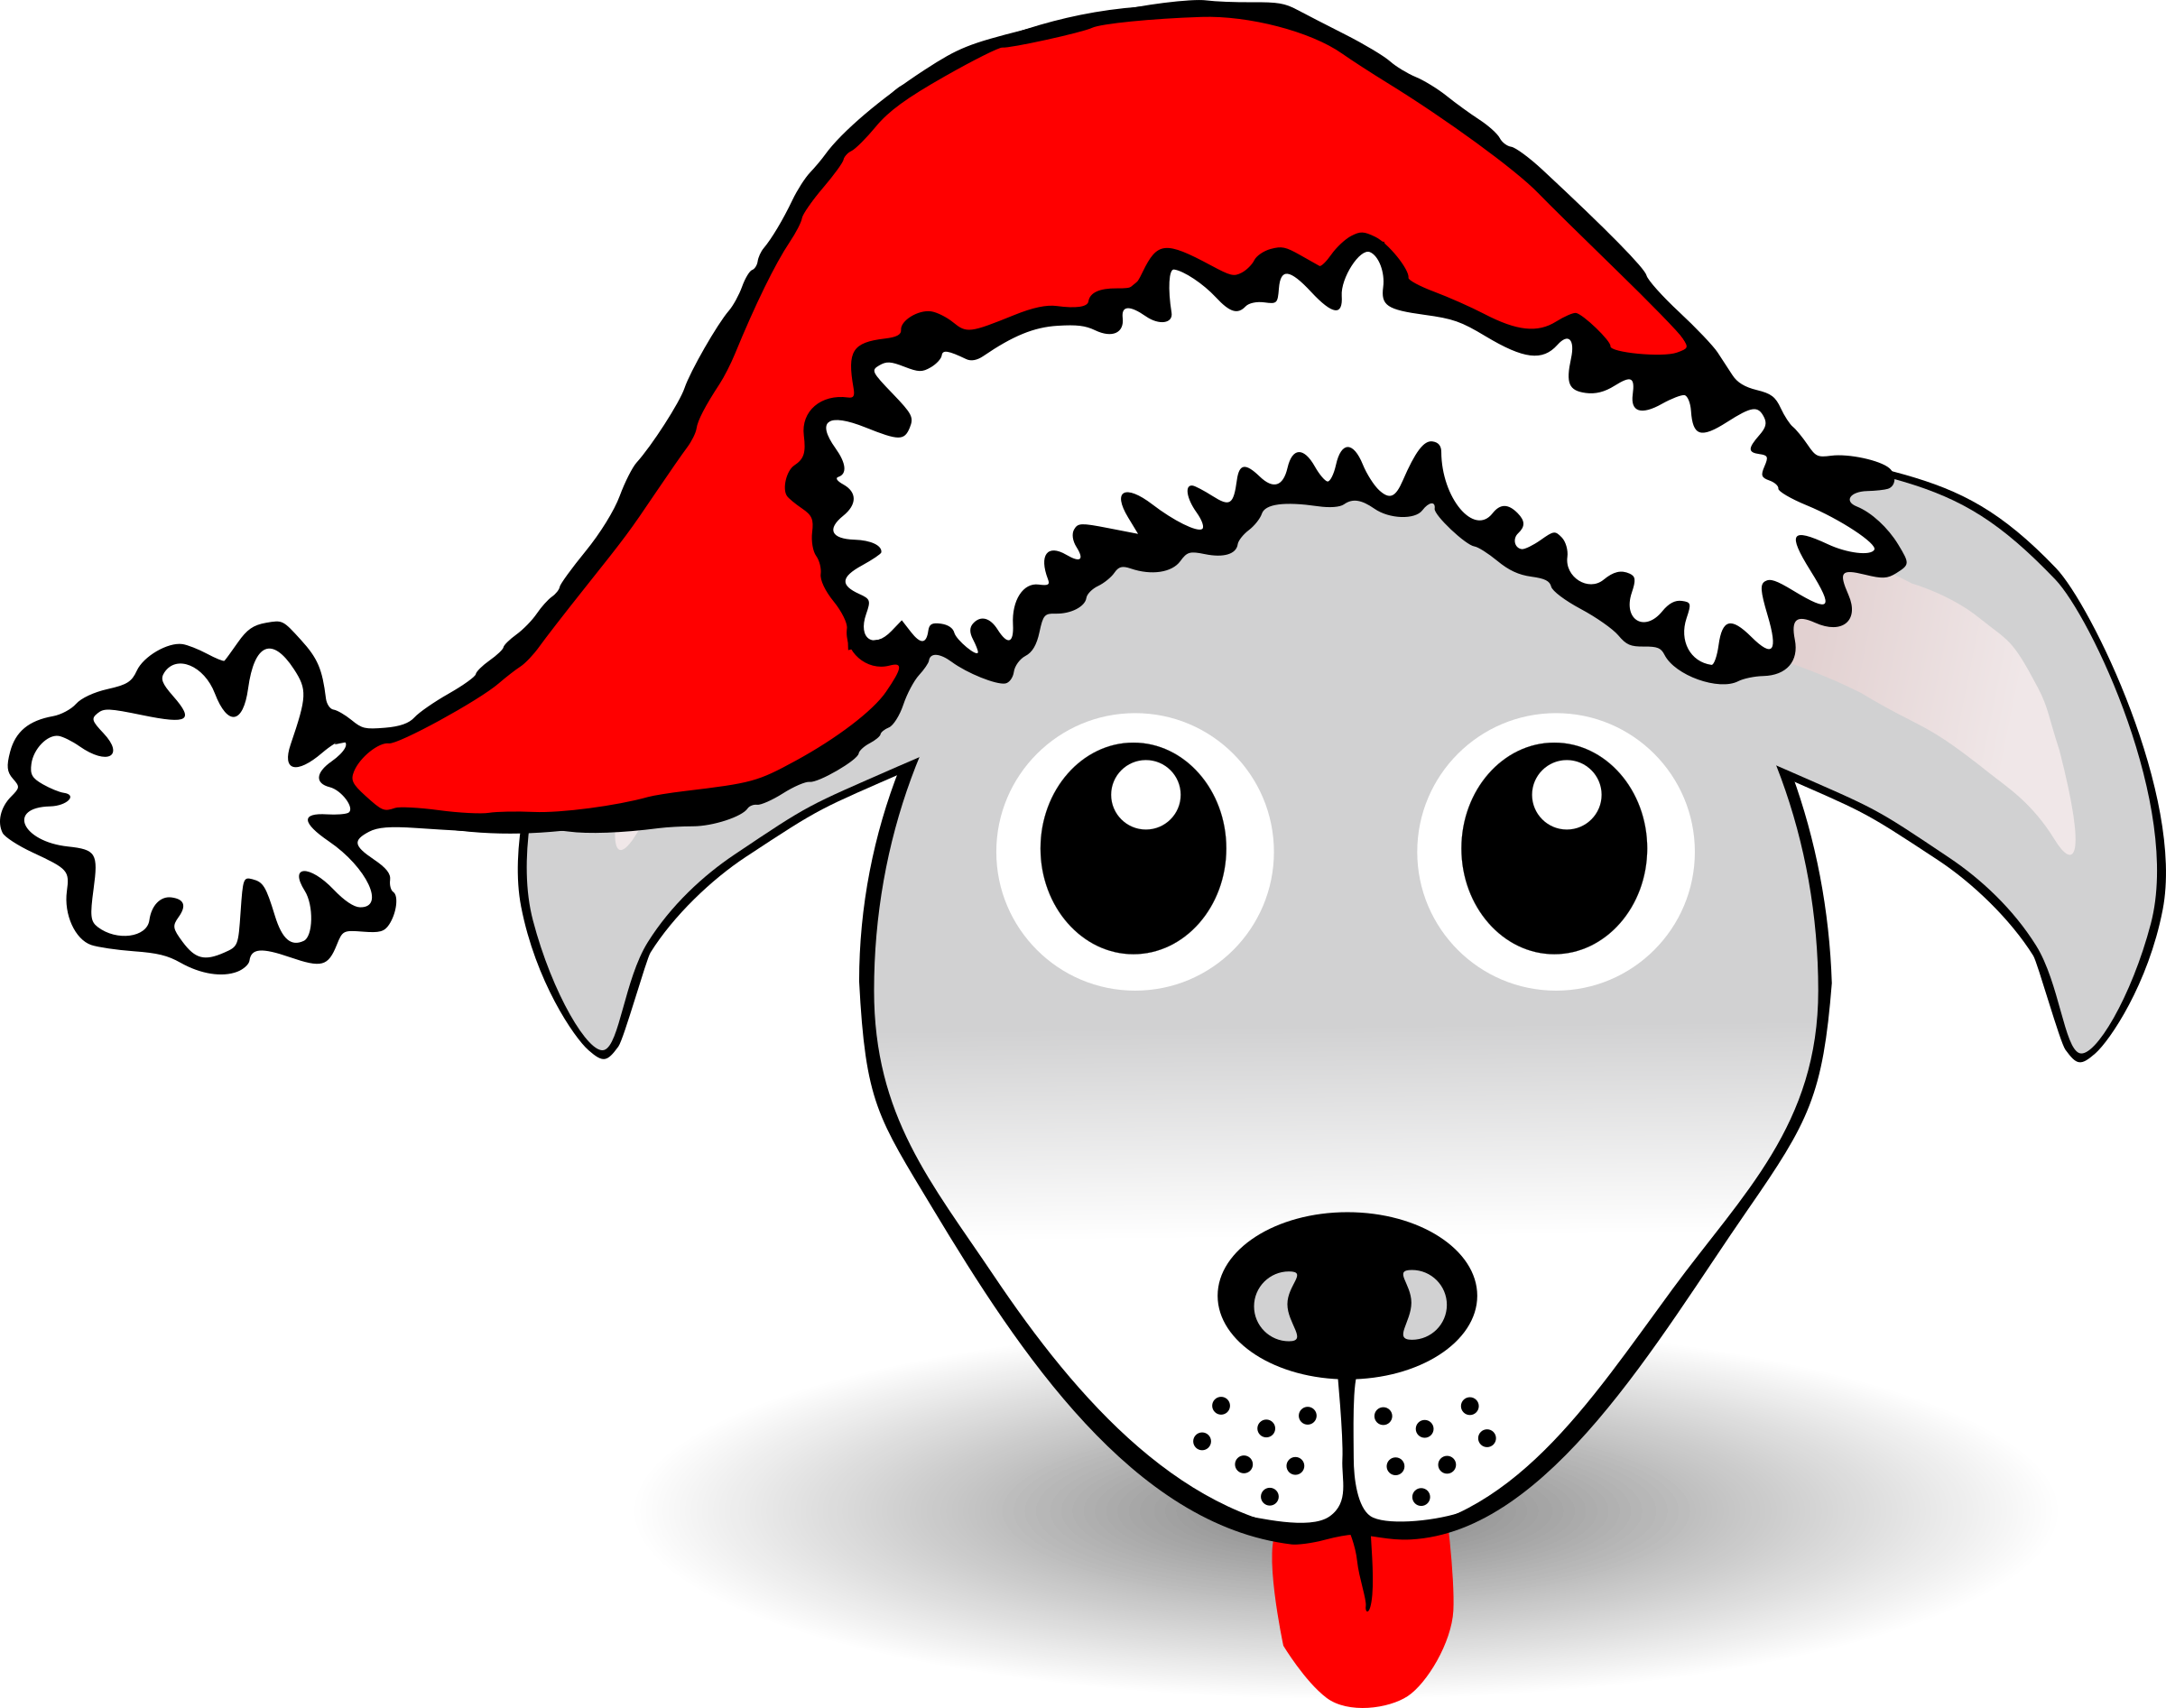 Santa dog clipart graphic transparent download Clipart - Funny Dog Face Grey Cartoon with Santa Claus hat graphic transparent download